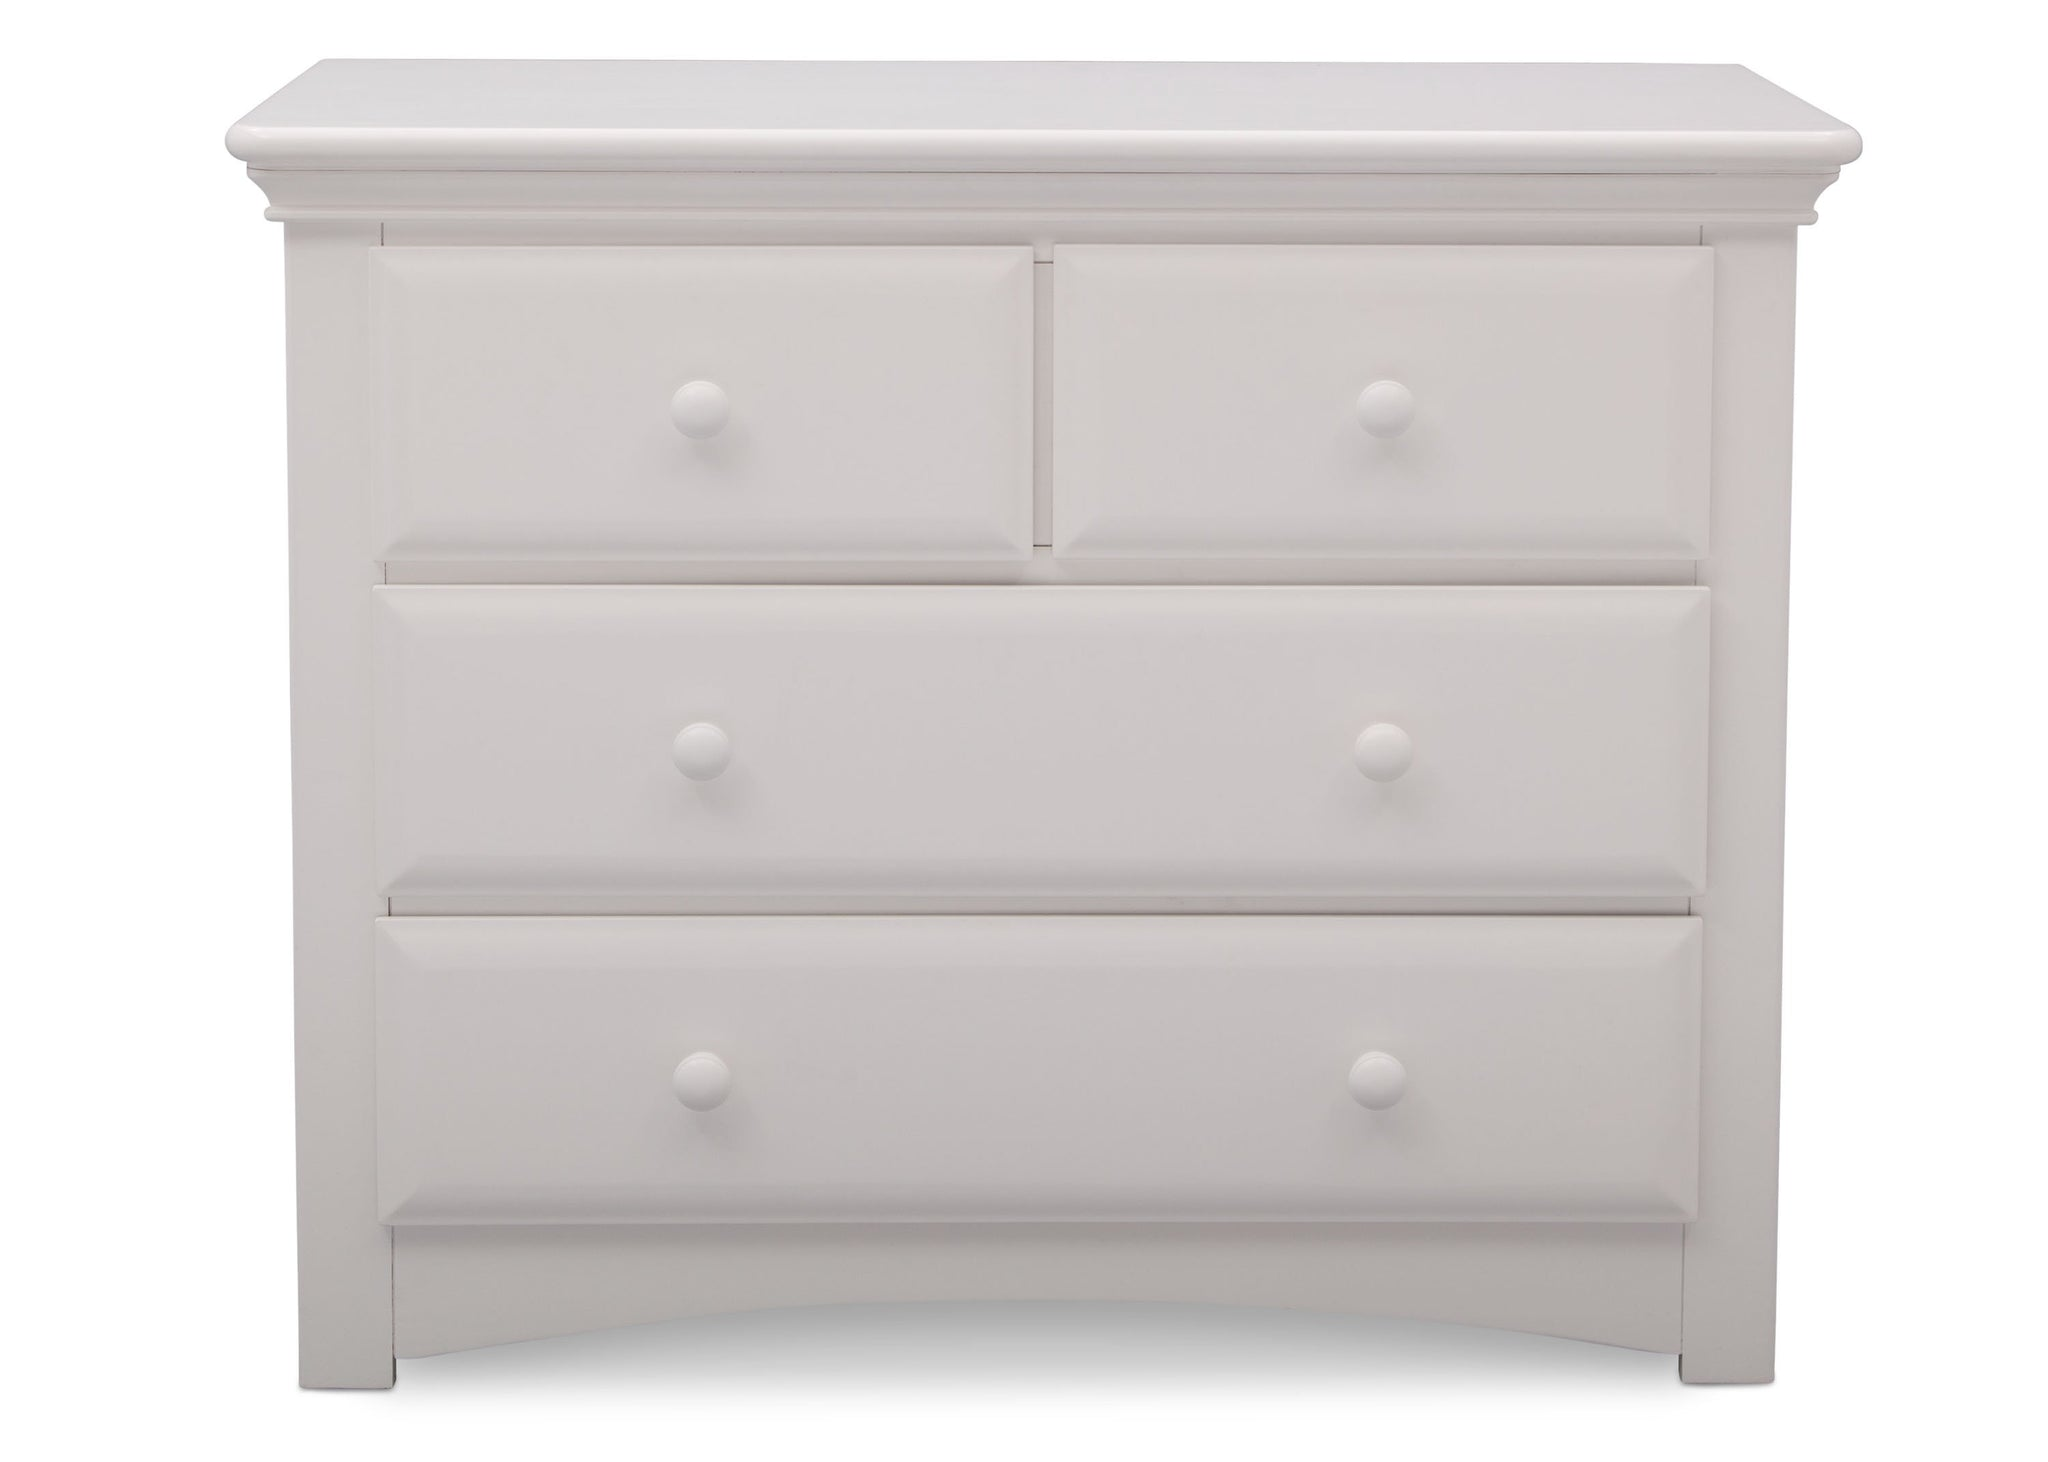 Serta Bianca (130) Park Ridge 4 Drawer Dresser (702640), Straight, b2b